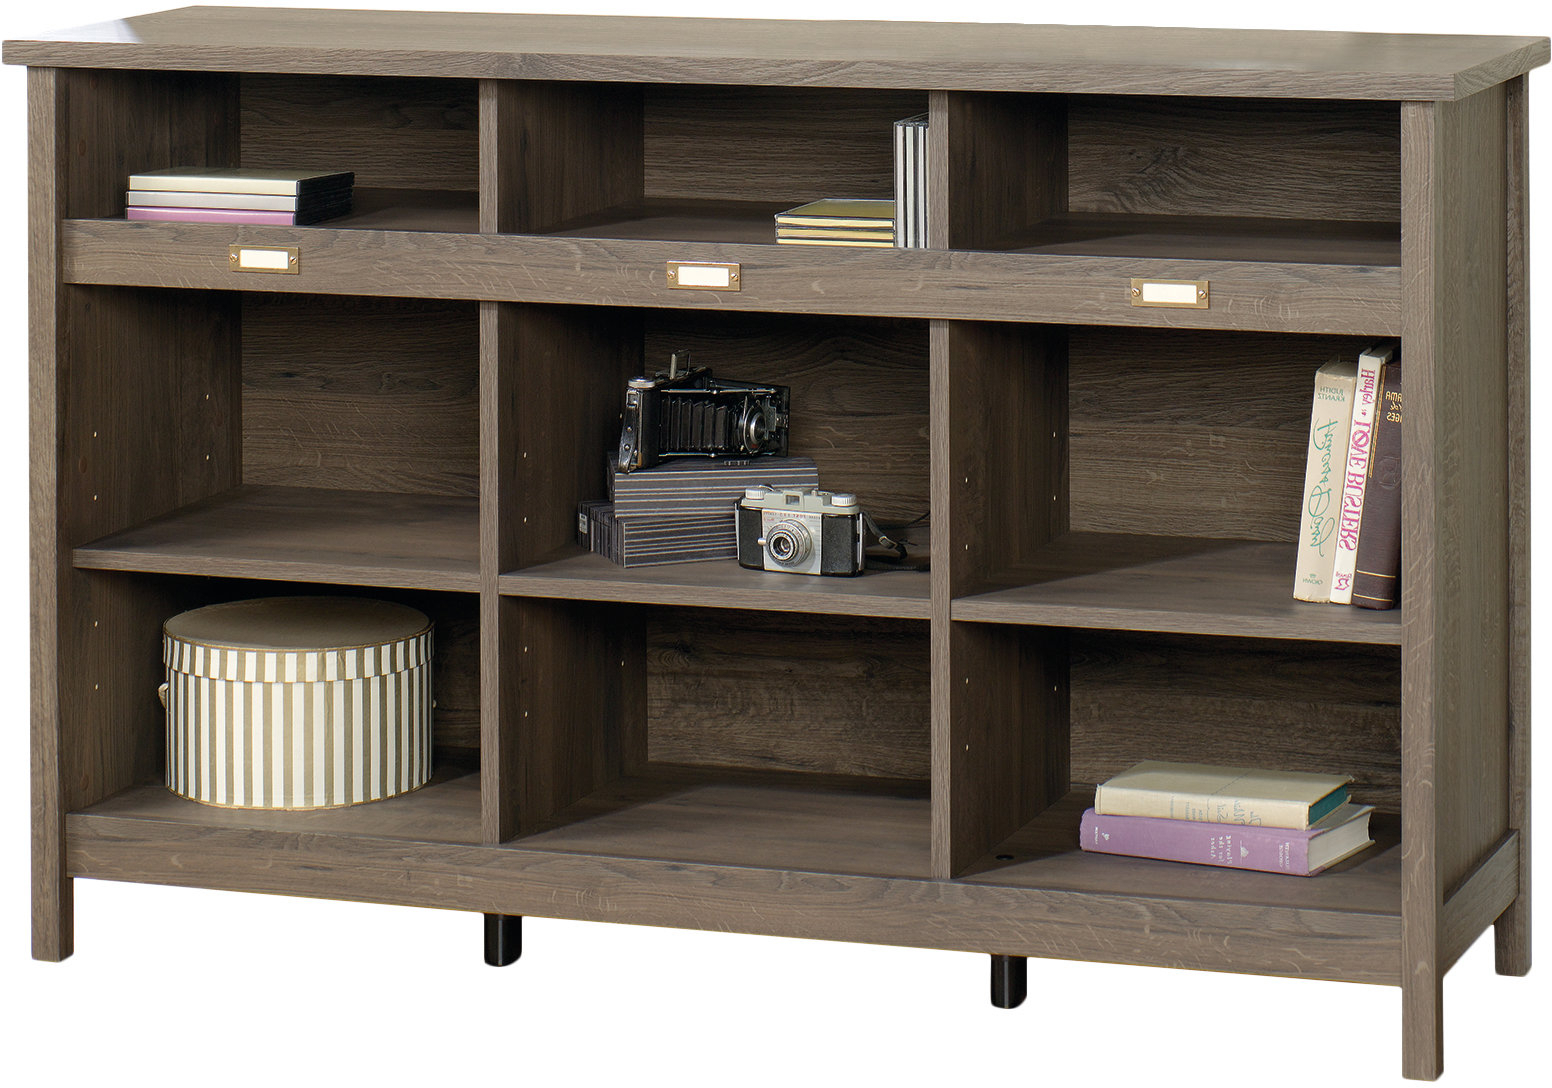 Preferred Broadview Cube Unit Bookcases Pertaining To Greyleigh Finkelstein Cube Unit Bookcase (View 16 of 20)